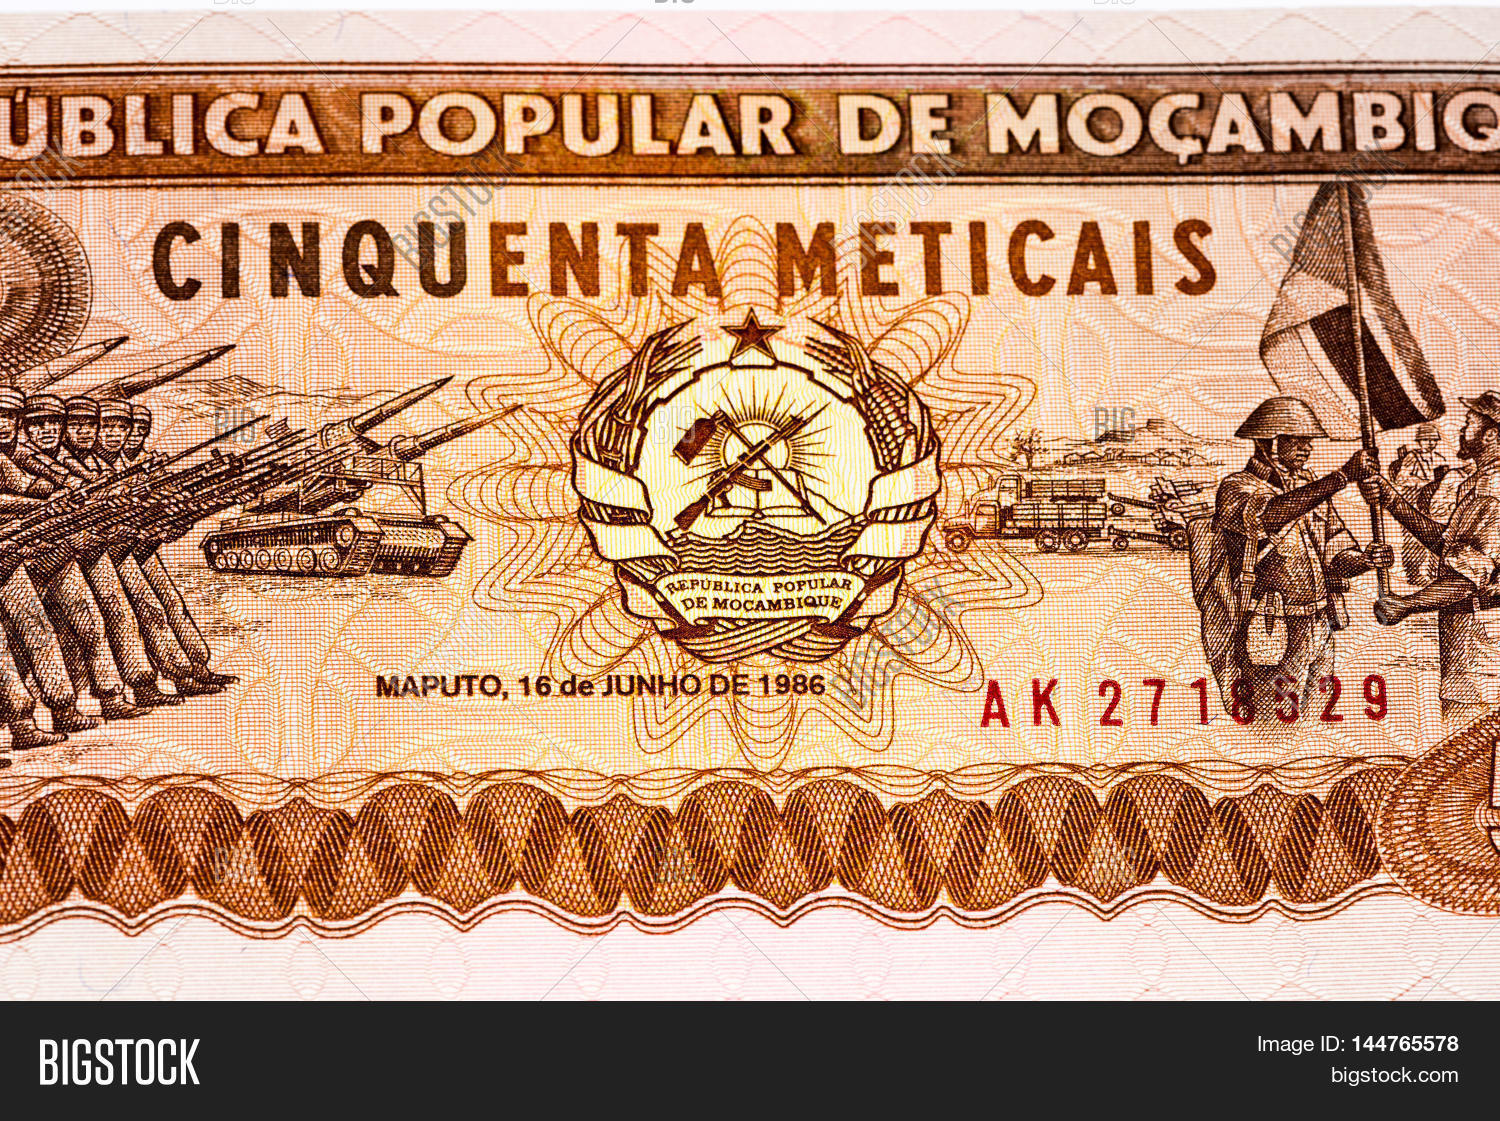 50 Mozambican Metical Image Photo